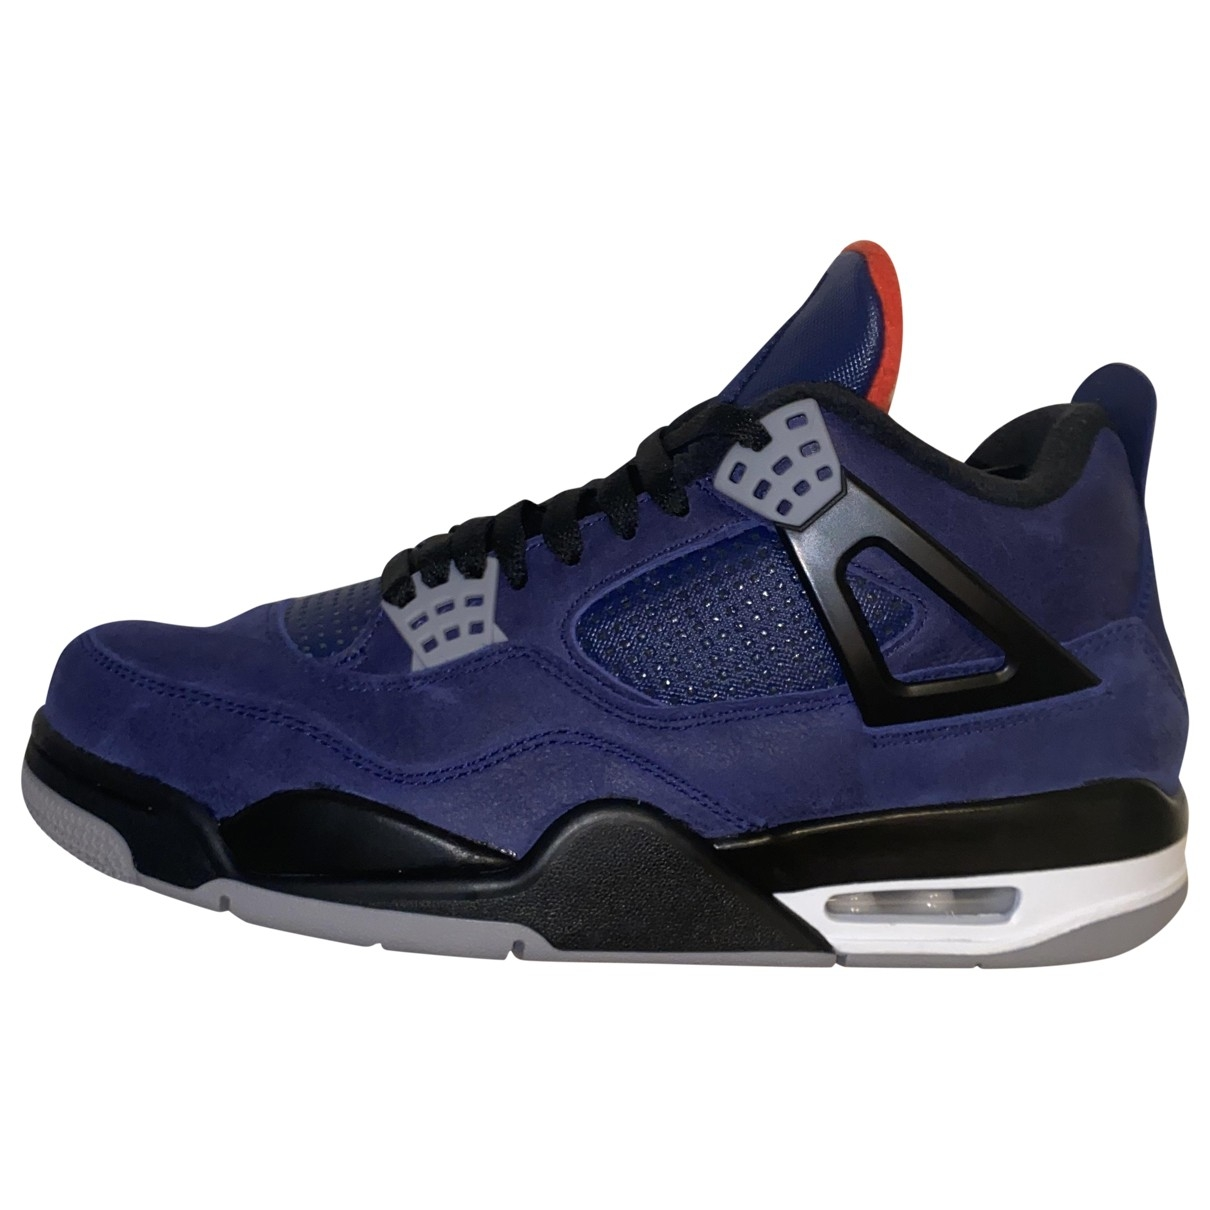 Jordan Air Jordan 4 Sneakers in  Blau Leder